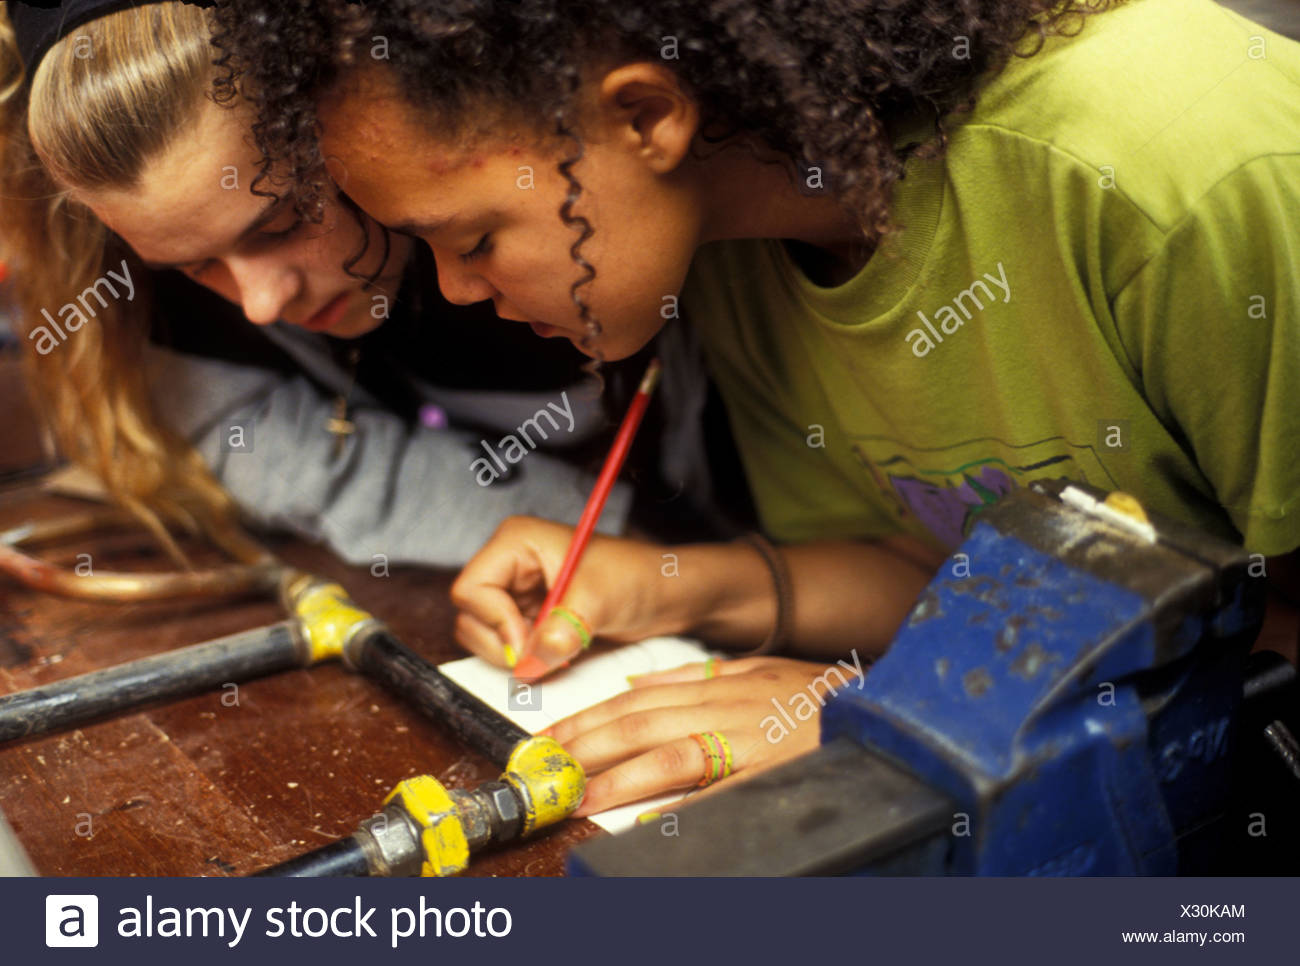 Girls doing metalwork in CDT class at Secondary school - Stock Image